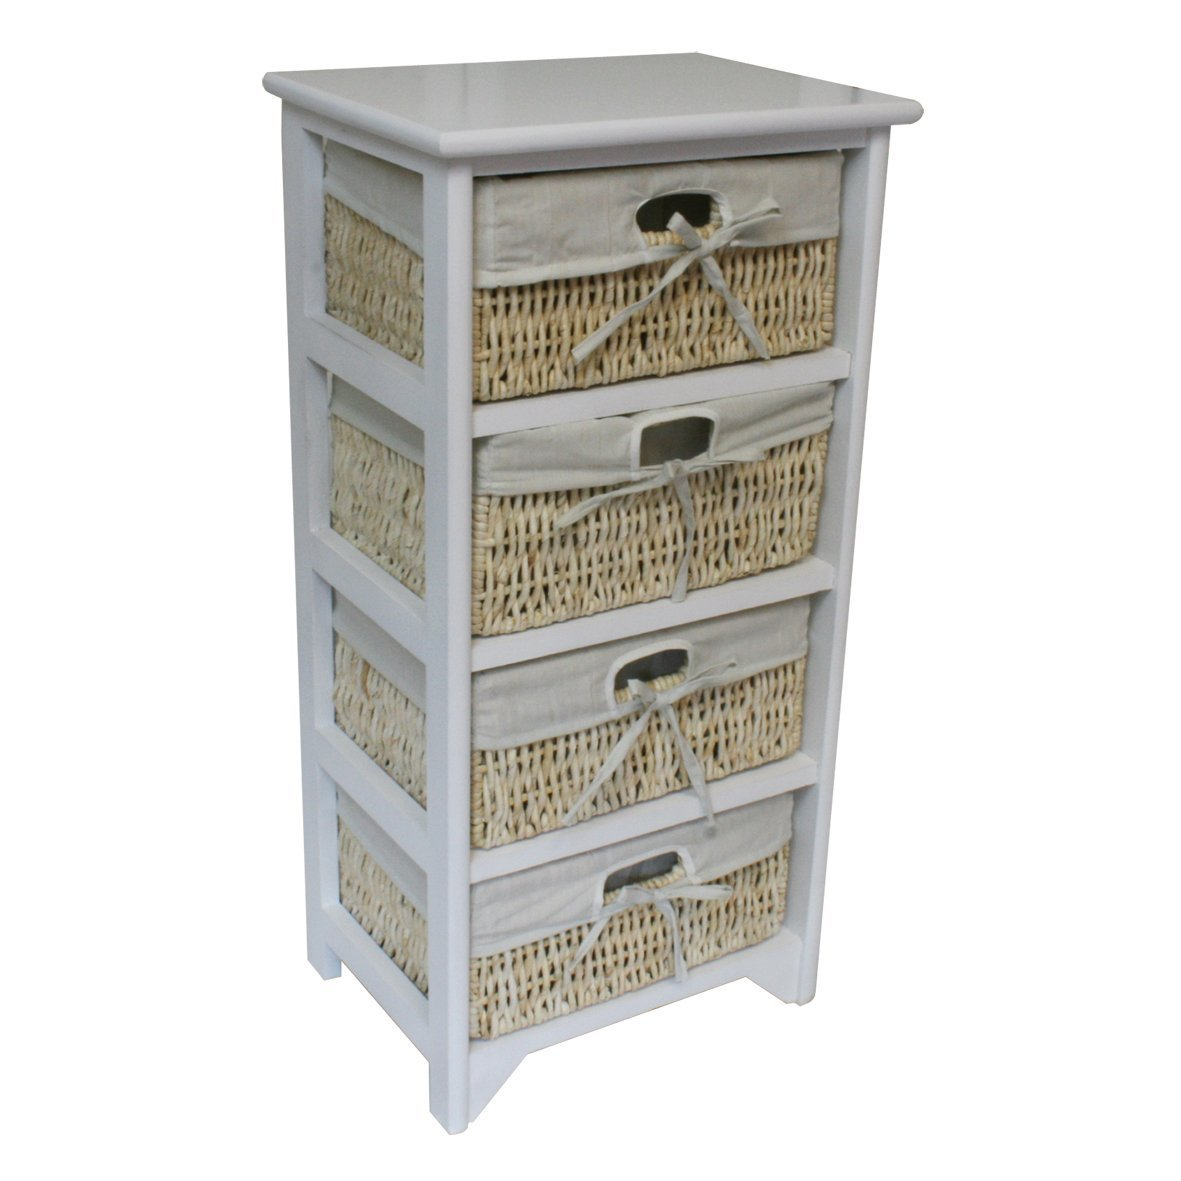 BTM 4 Drawer Wooden Storage Wardrobe Cabinet with Maize Wicker Drawers/ Baskets Bedroom / Bathroom ,40 x 29 x 73 cm White (XL)